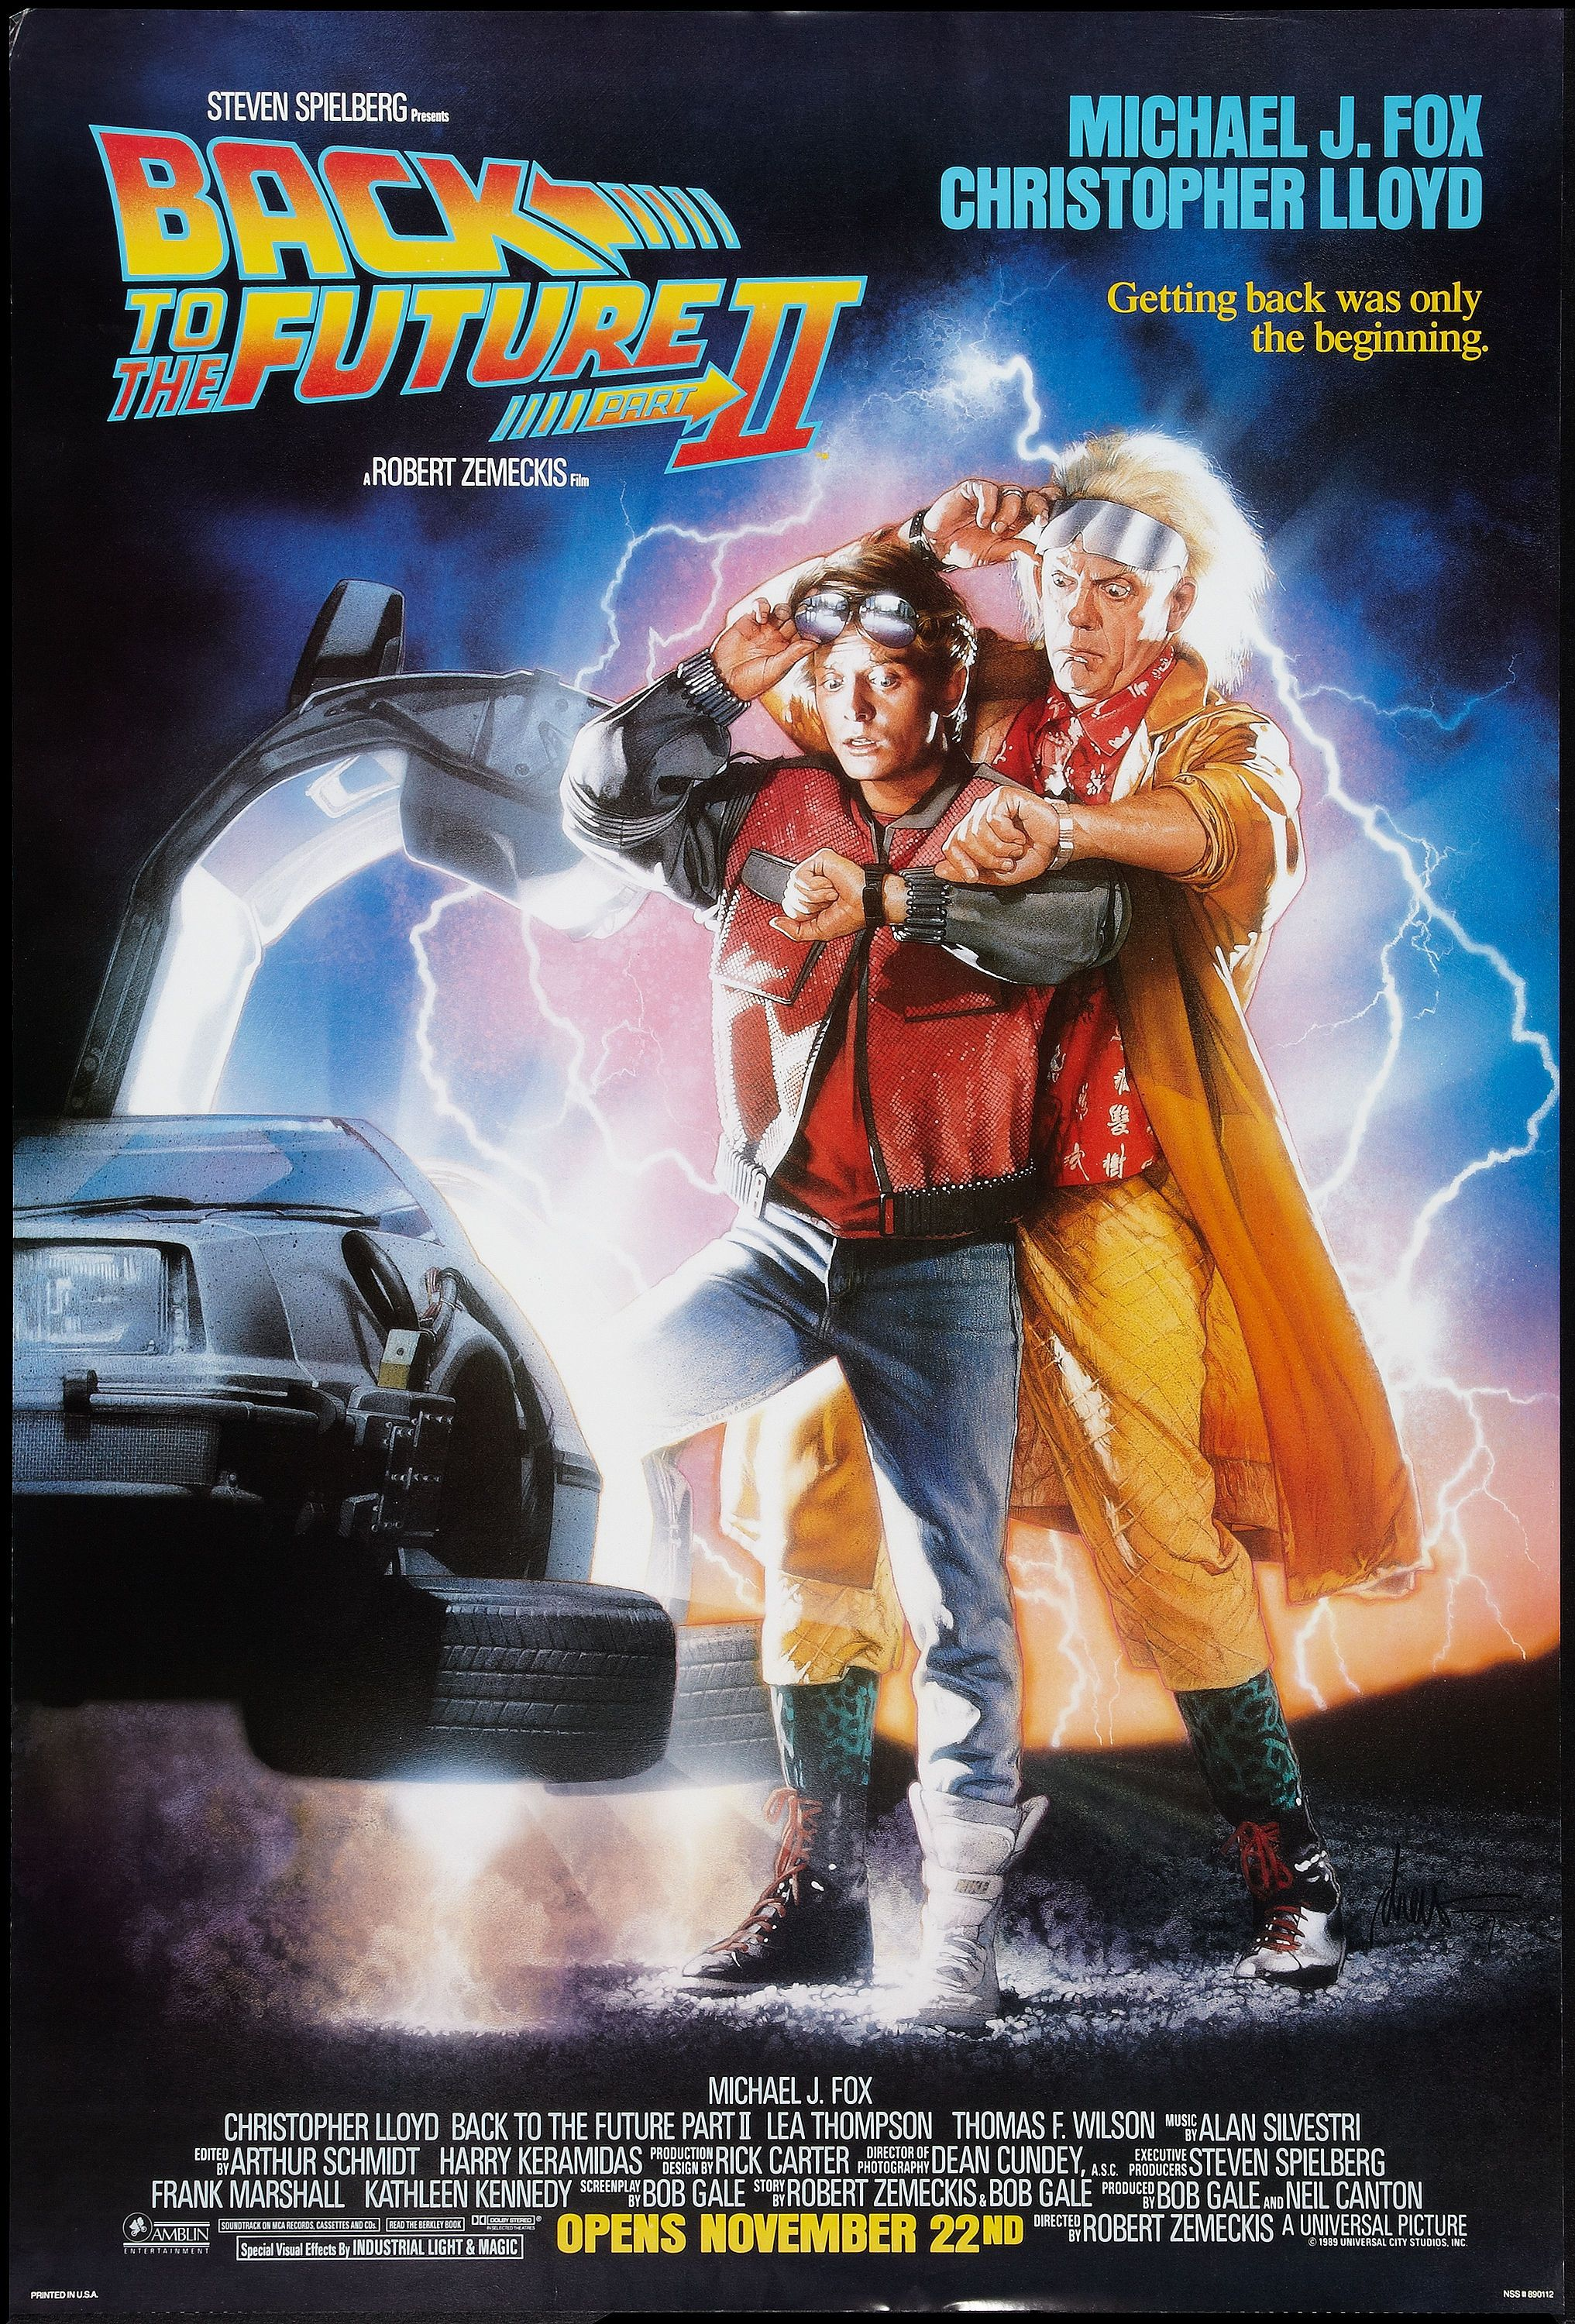 Back To The Future 2 Movie Poster Posters Pinterest Short Circuit 27x40 1986